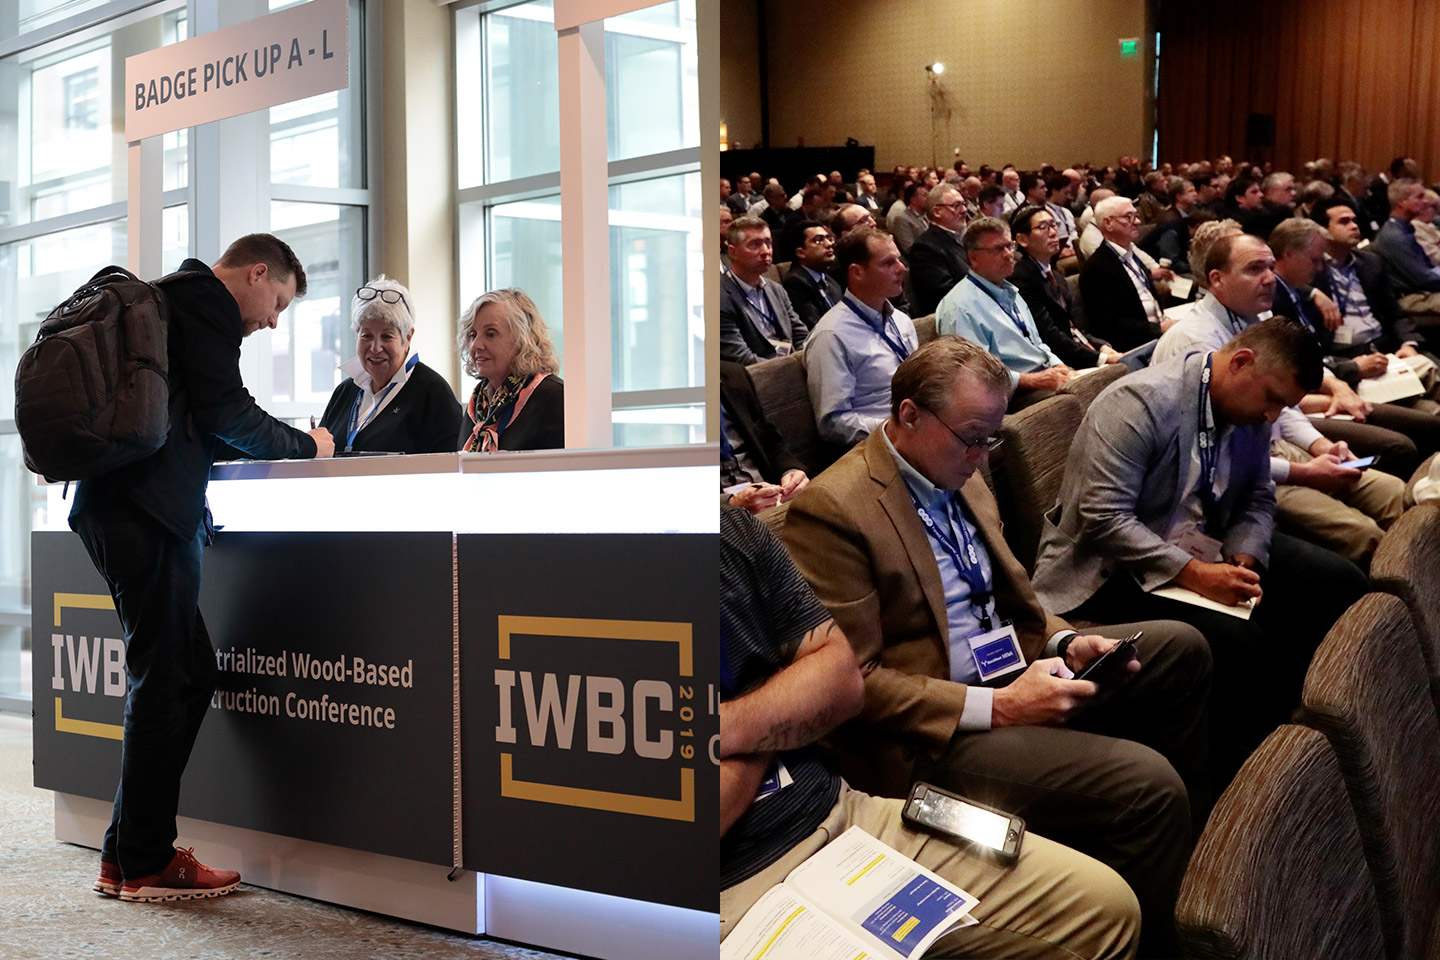 Industrialized Wood-Based Construction Conference